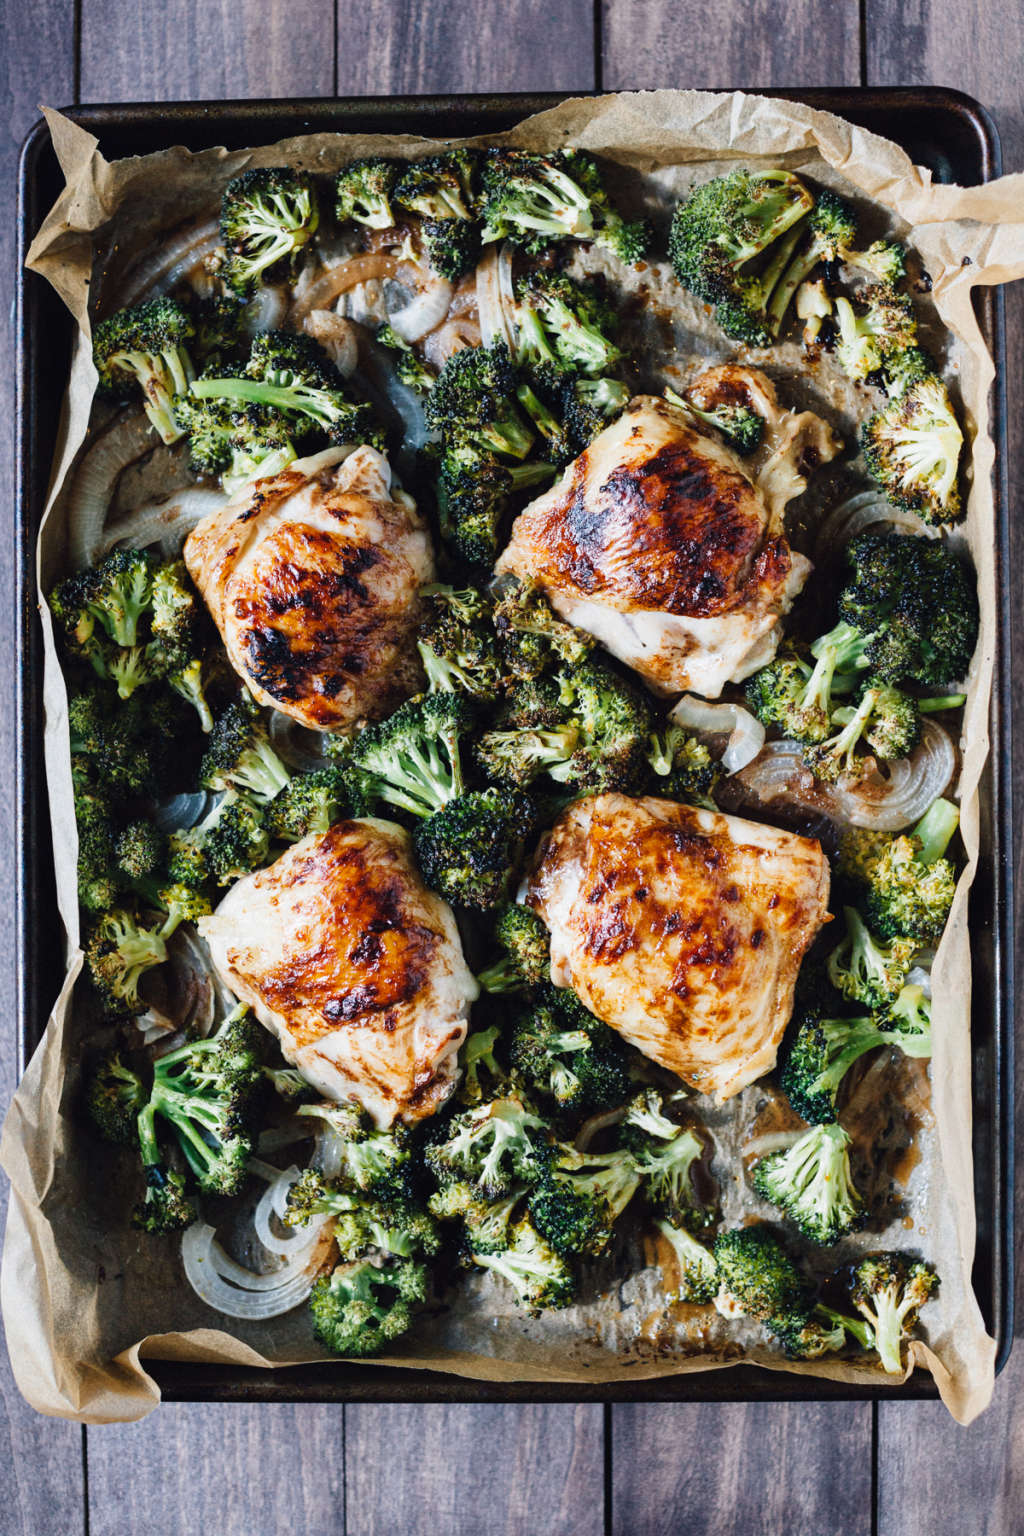 Make This Sheet Pan Balsamic Chicken and Broccoli for Dinner